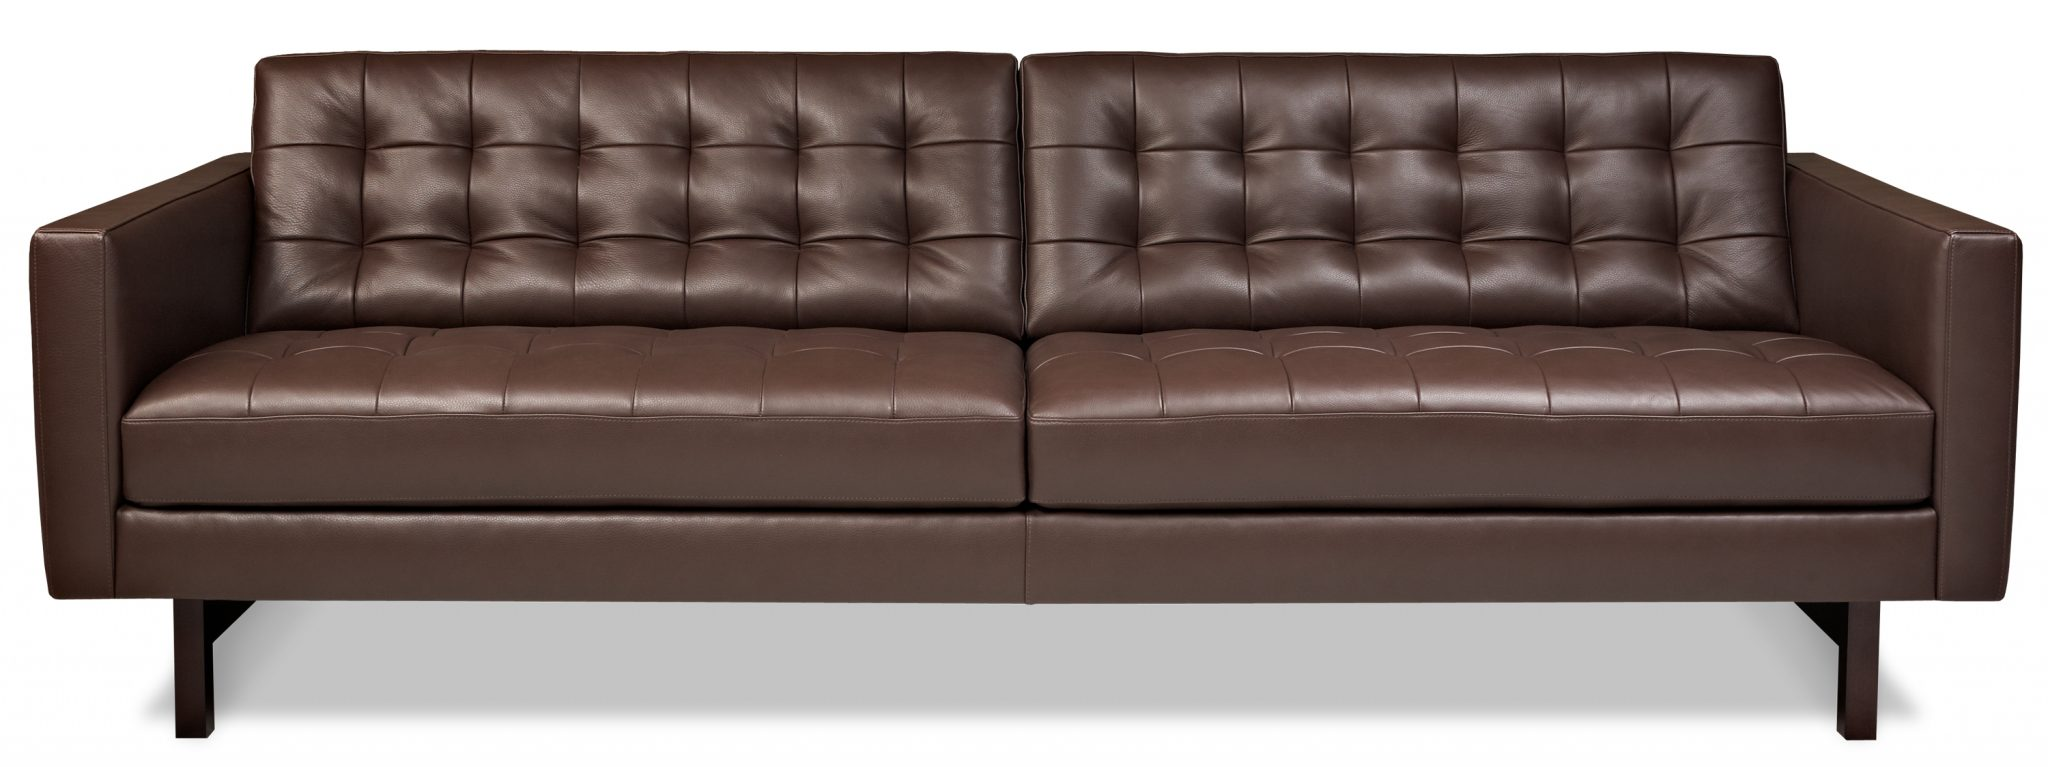 american leather reviews american leather sofa reviews www energywarden net 1236